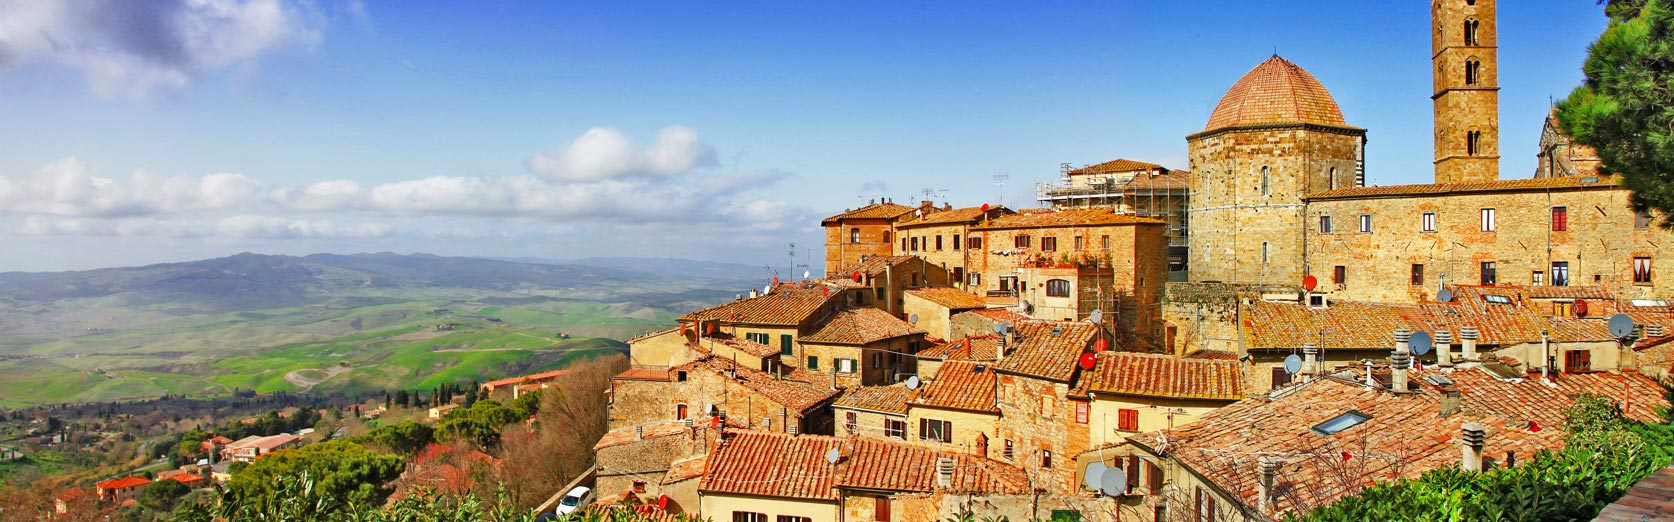 volterra-tuscany-weddings